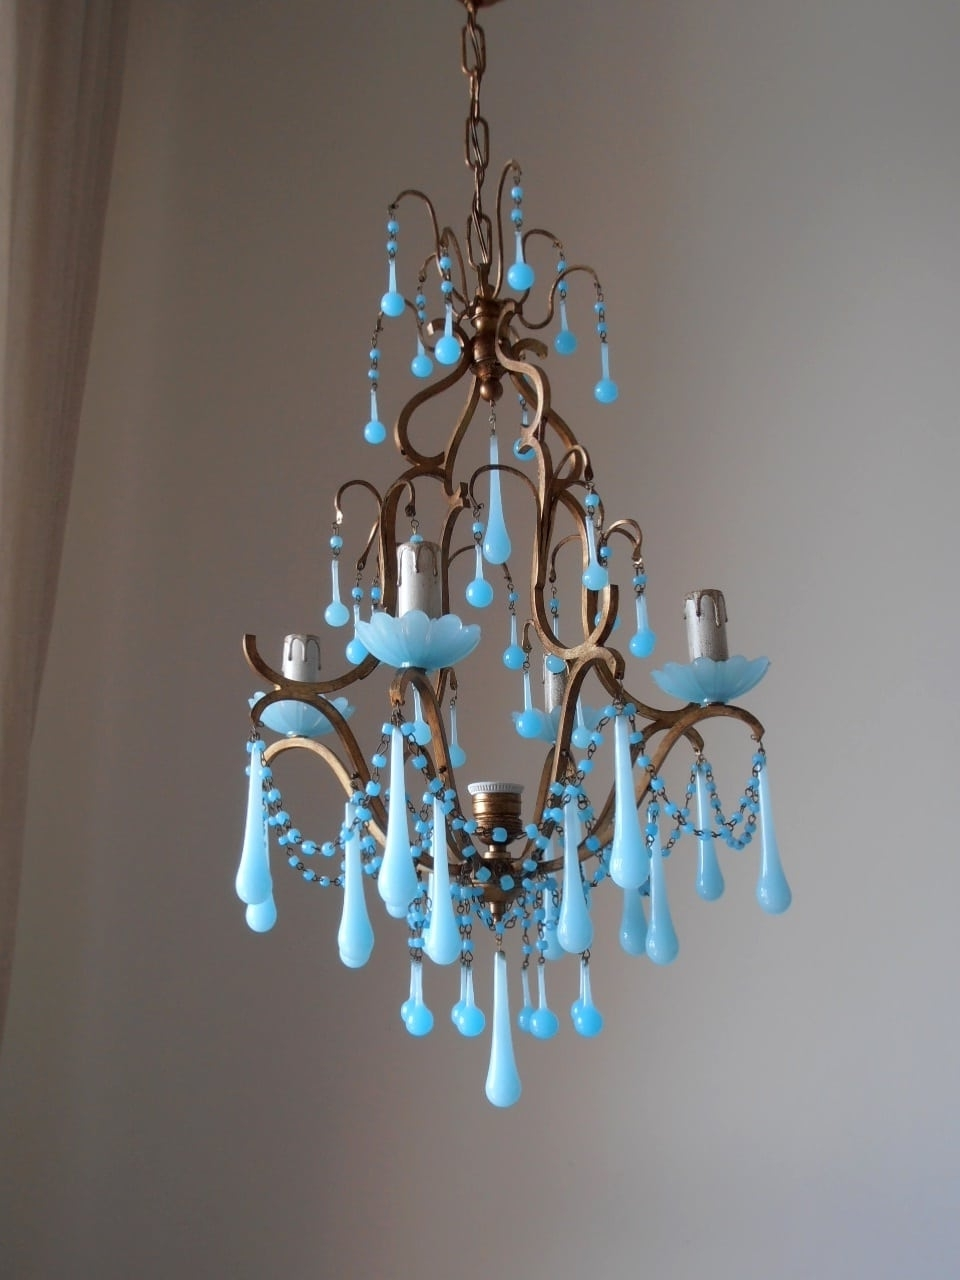 Widely Used Italian Birdcage Chandelier With Blue Murano Opaline – Lorella Dia For Turquoise Birdcage Chandeliers (View 5 of 20)